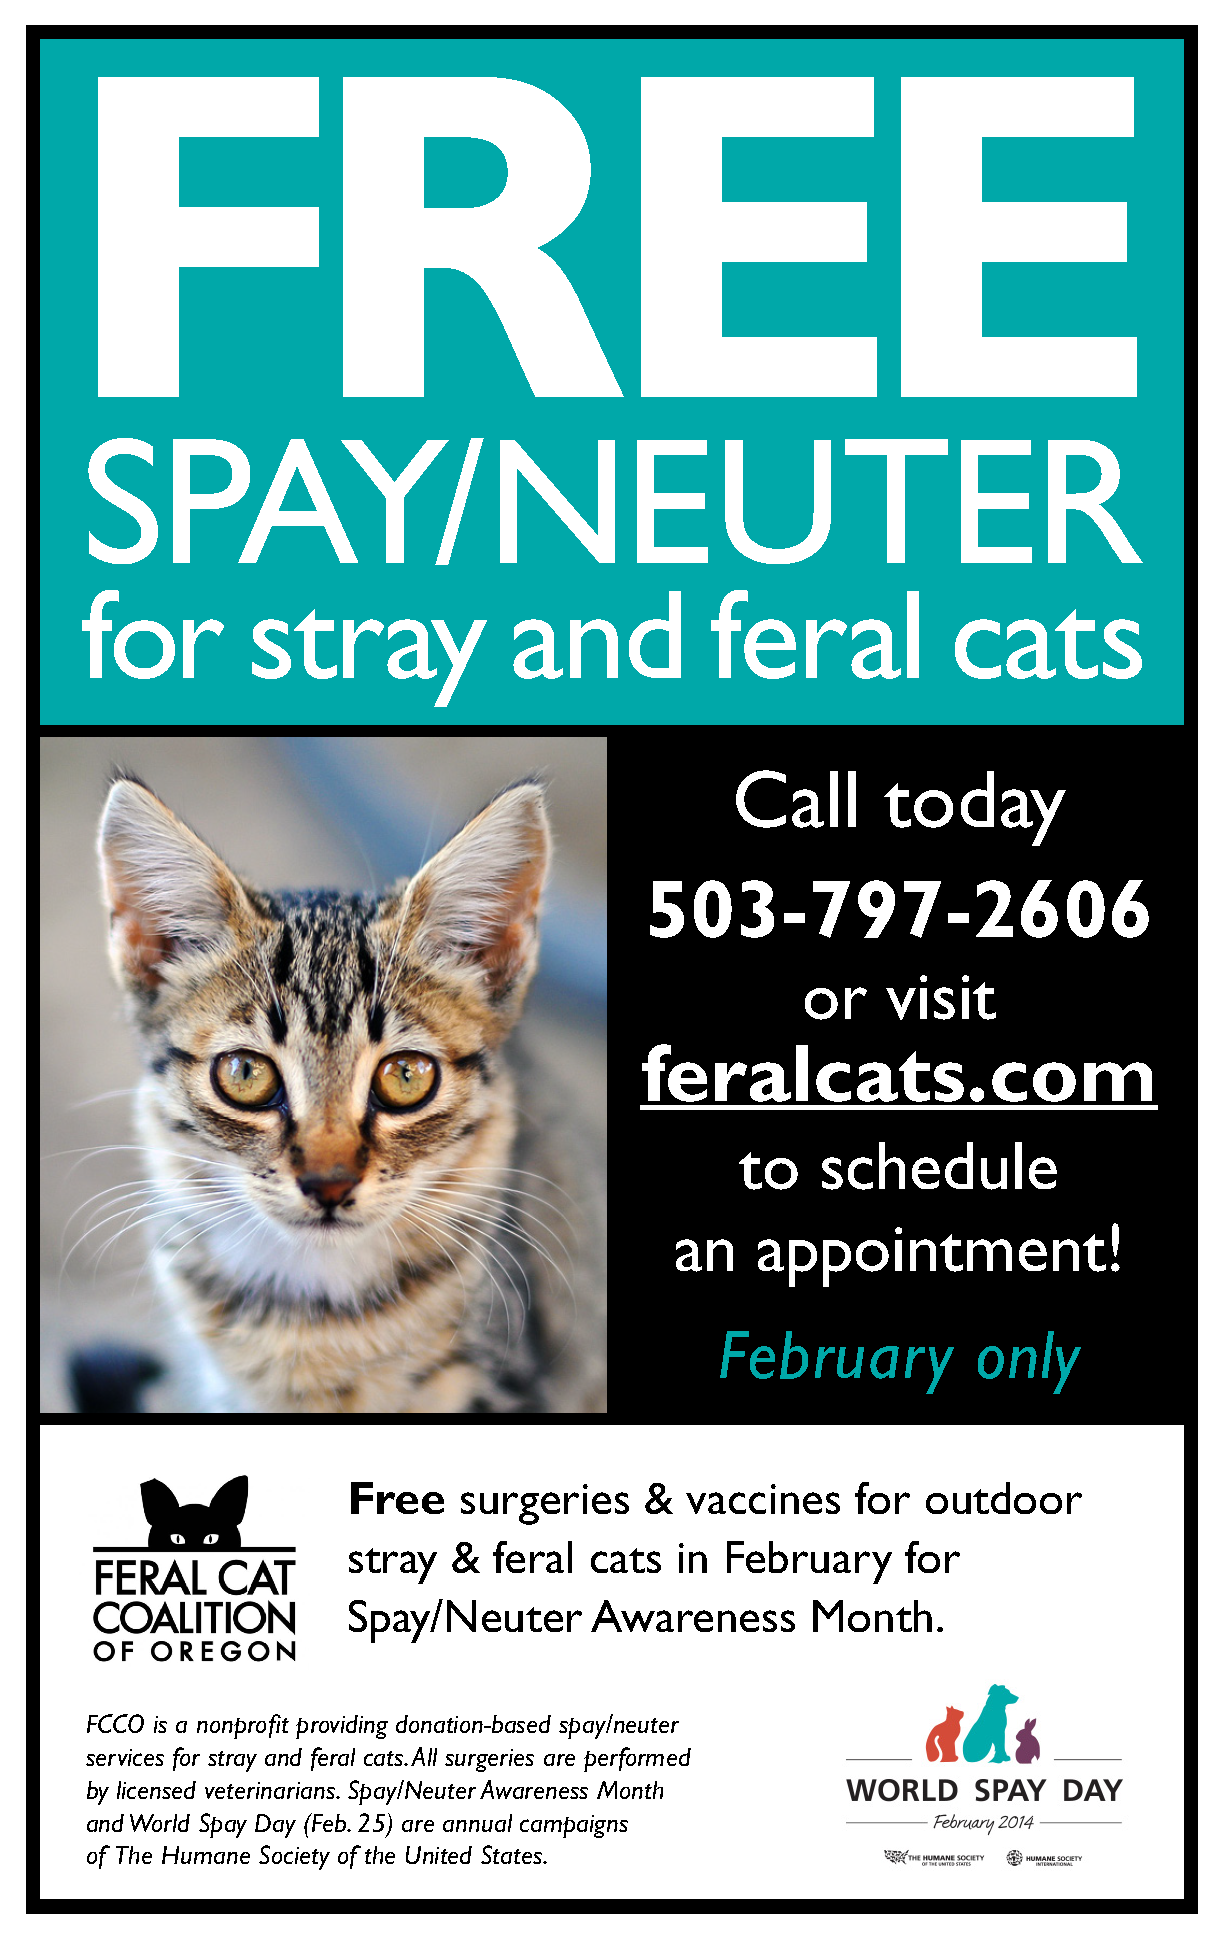 FREE spay/neuter special this February in honor of Spay